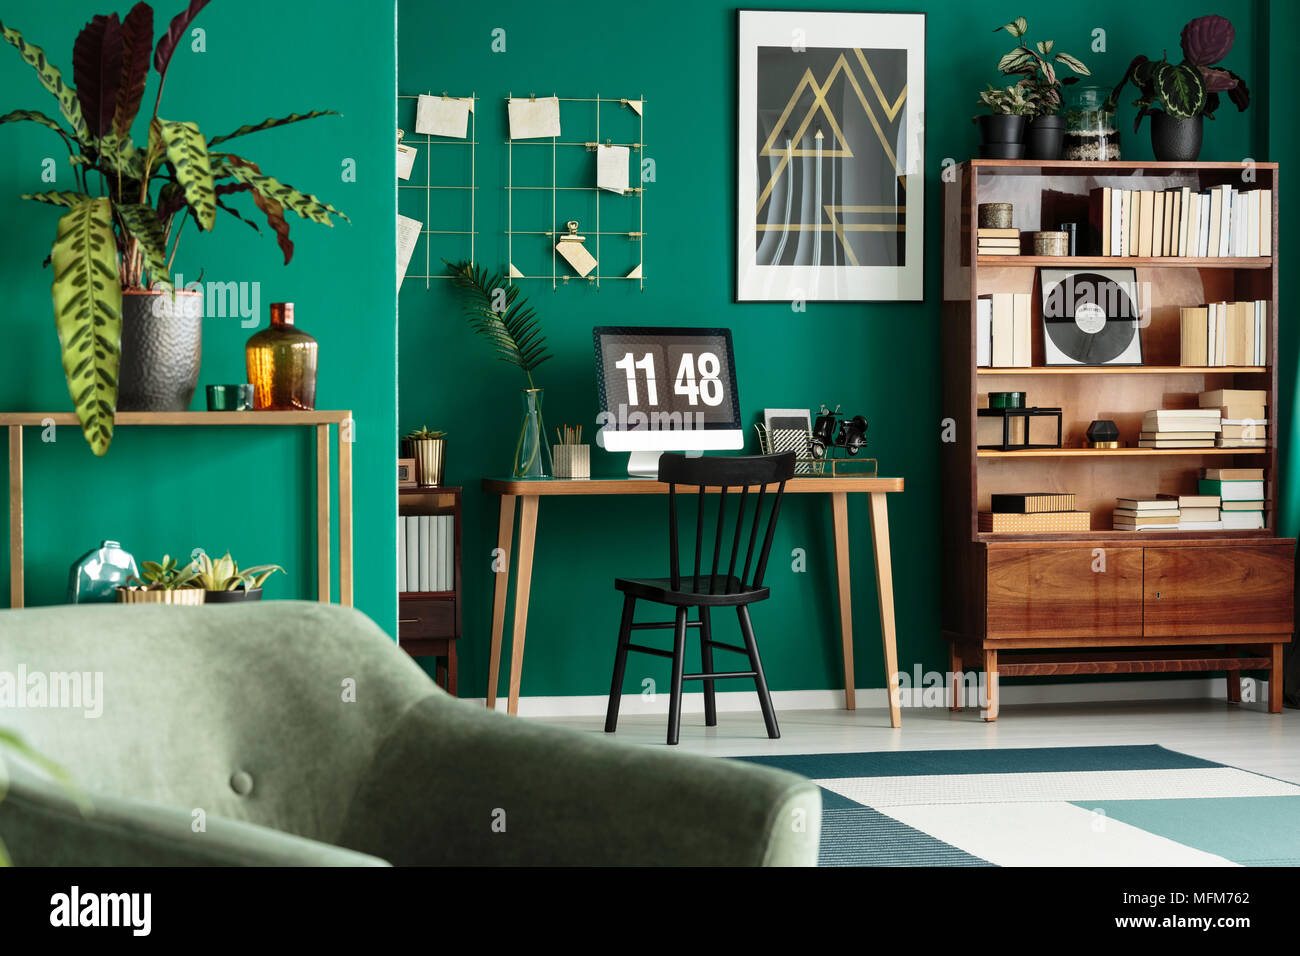 Hipster Home Office Desk With Desktop Computer And An Antique, Wooden  Bookcase In A Green, Designer Living Room Interior With Plants